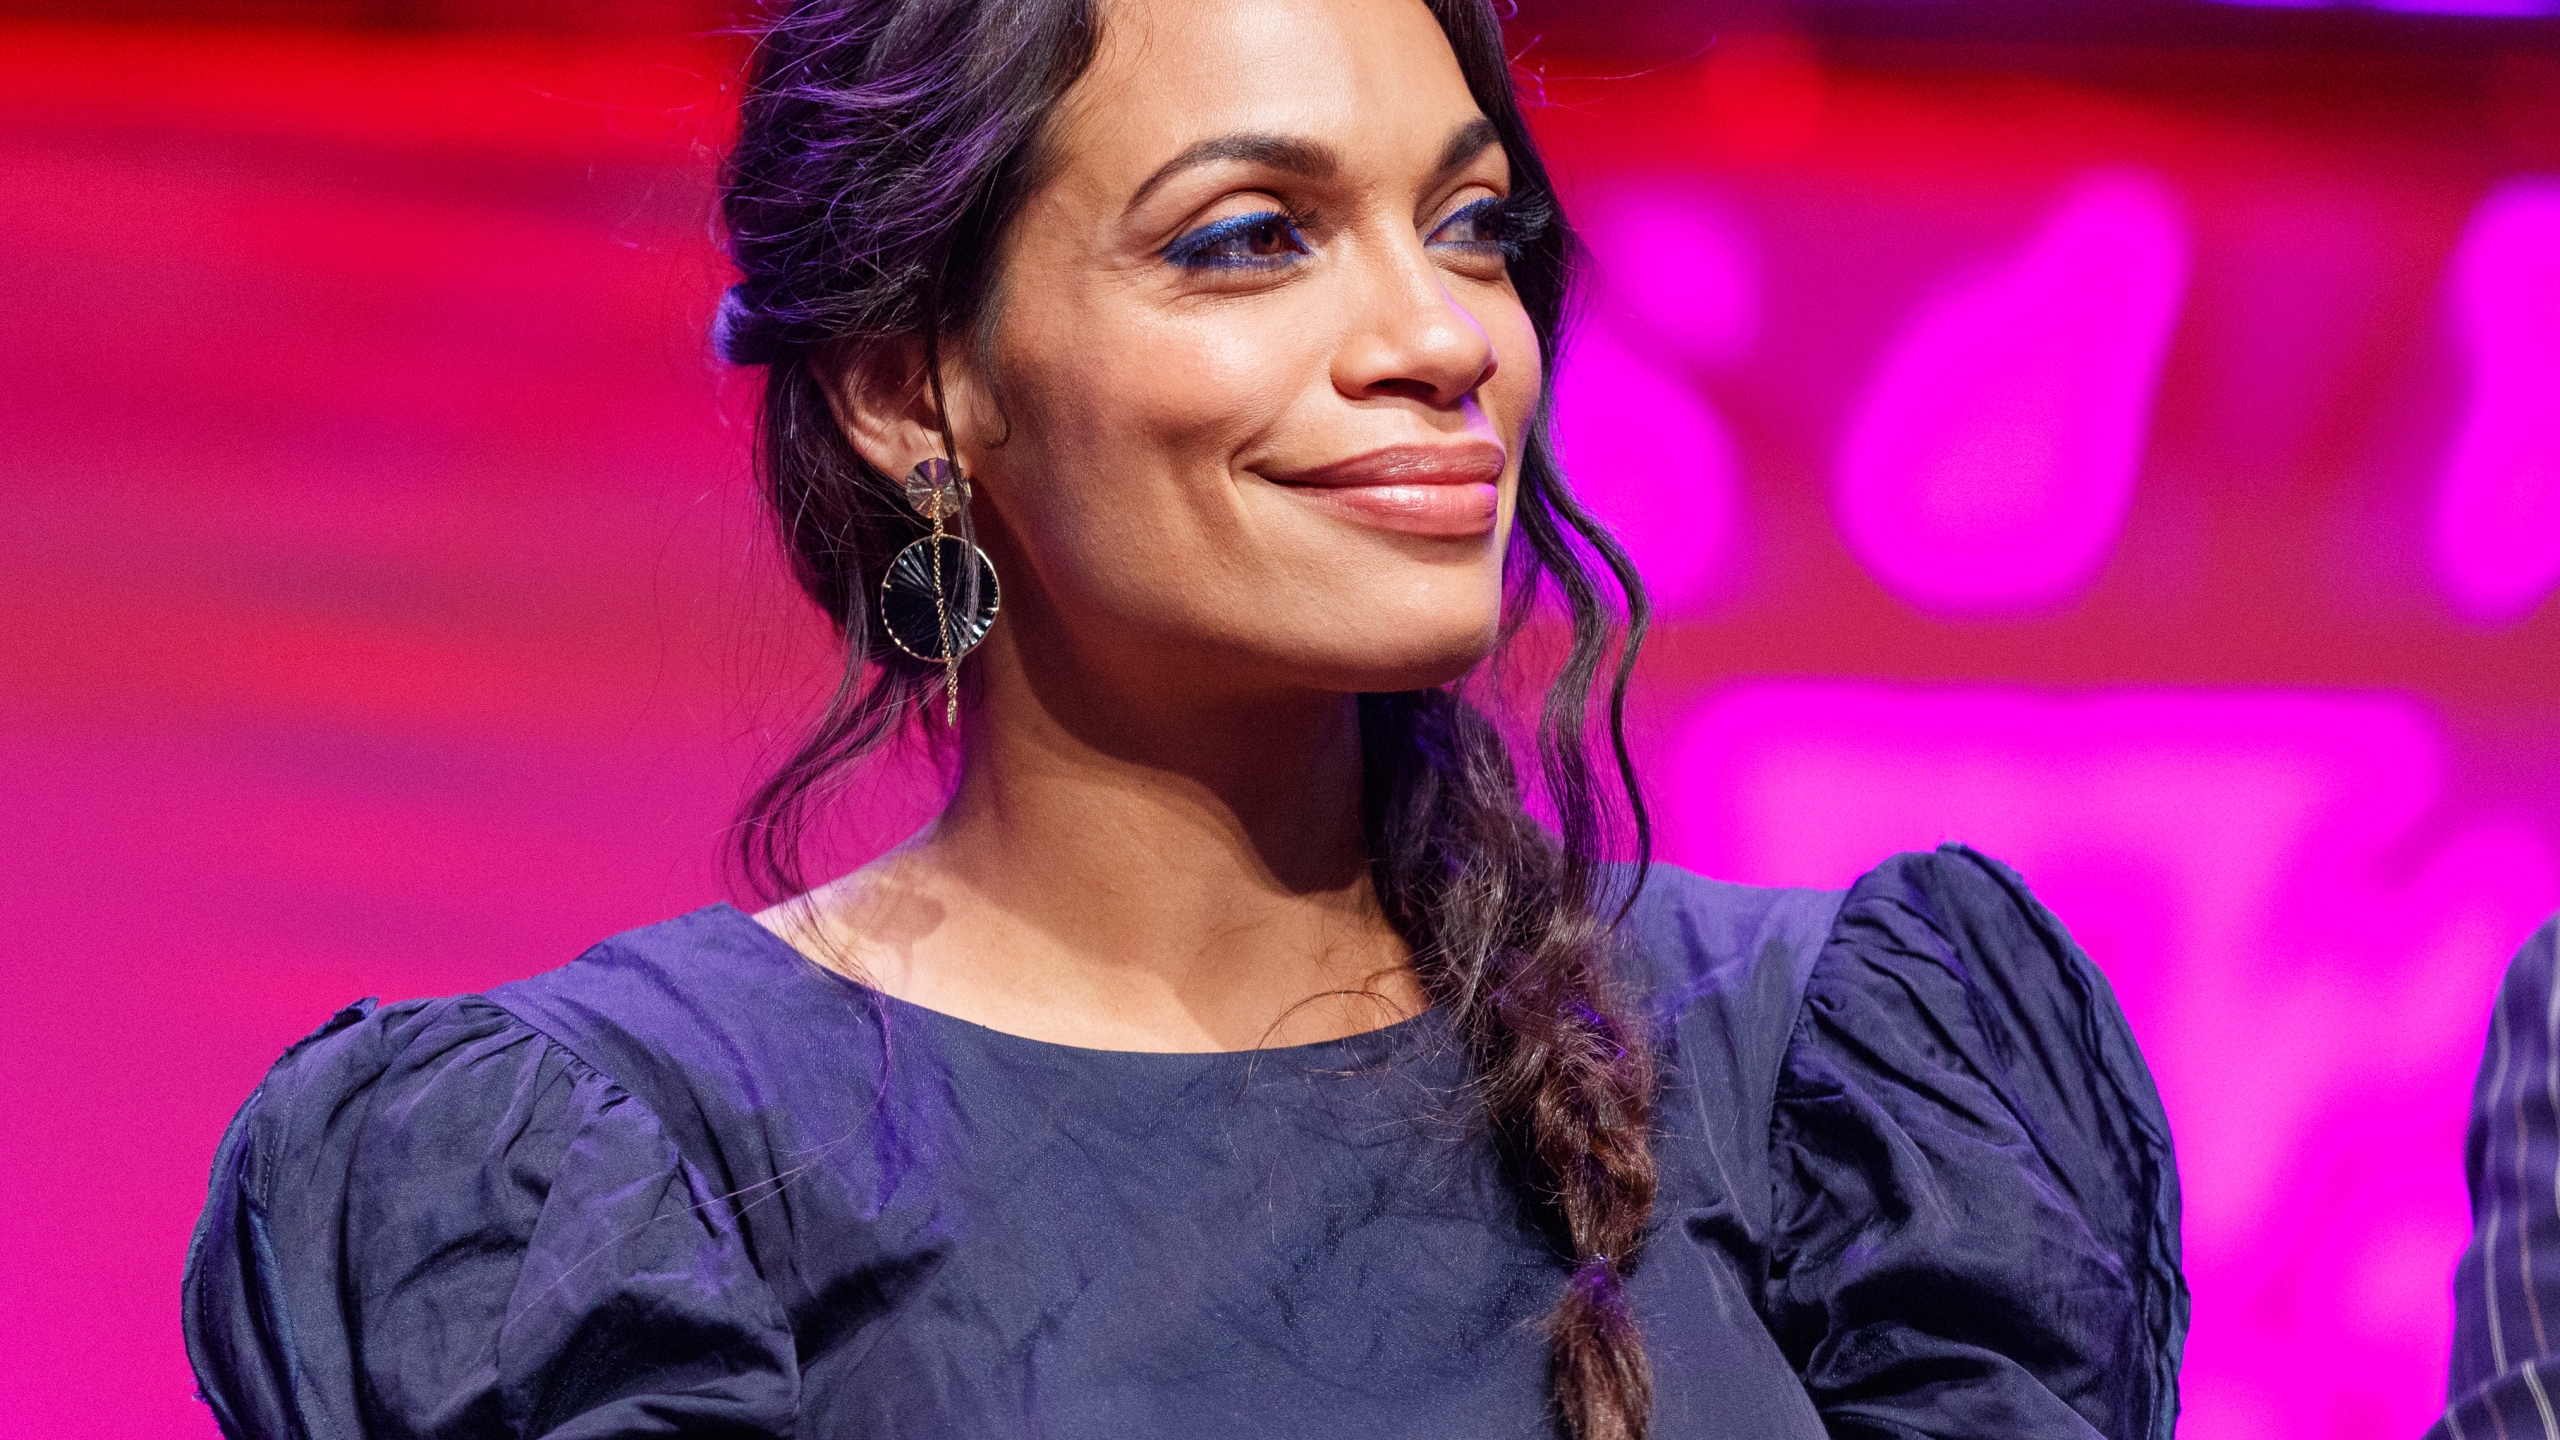 """Actress Rosario Dawson appears on stage at a """"Zombieland 2"""" panel and screening at the Los Angeles Convention Center on Oct. 12, 2019. (Credit: Rich Polk / Getty Images for Sony Pictures Entertainment)"""